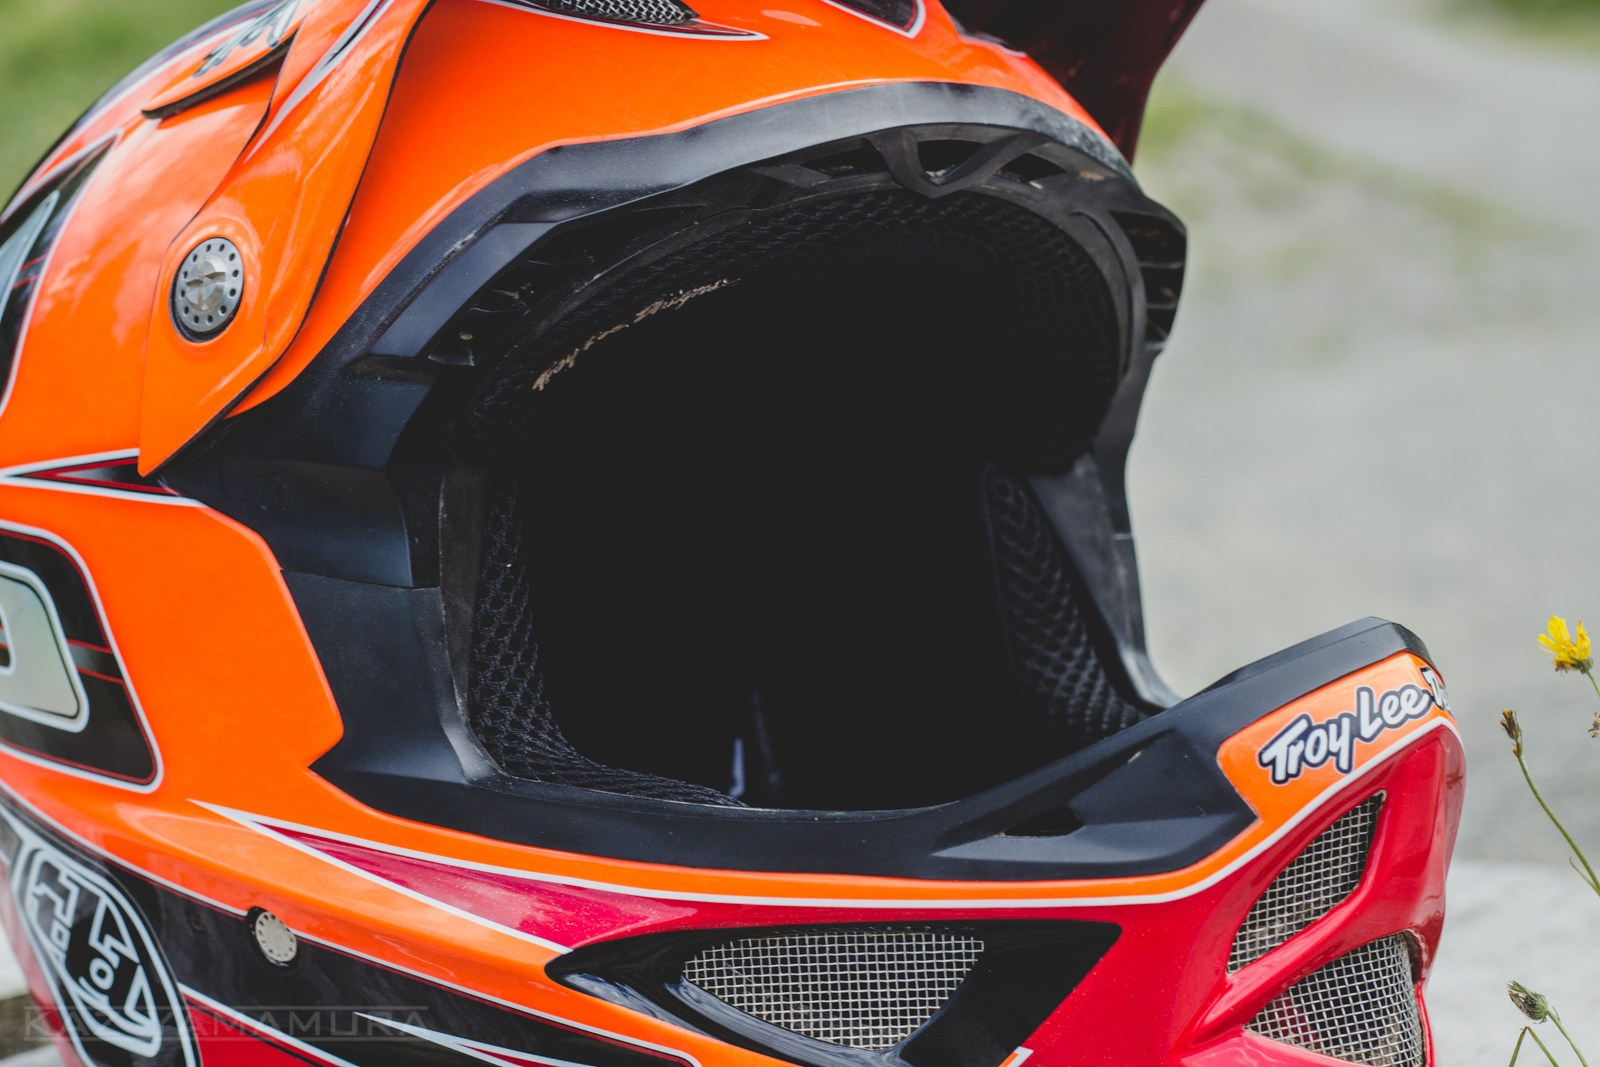 I read some complaints on the forums when Troy Lee Designs released their 2014 color ways, but I've quite liked most of the new lids in person and the 2014 D3 Speed Carbon Fiber Orange helmet seen here is no exception.